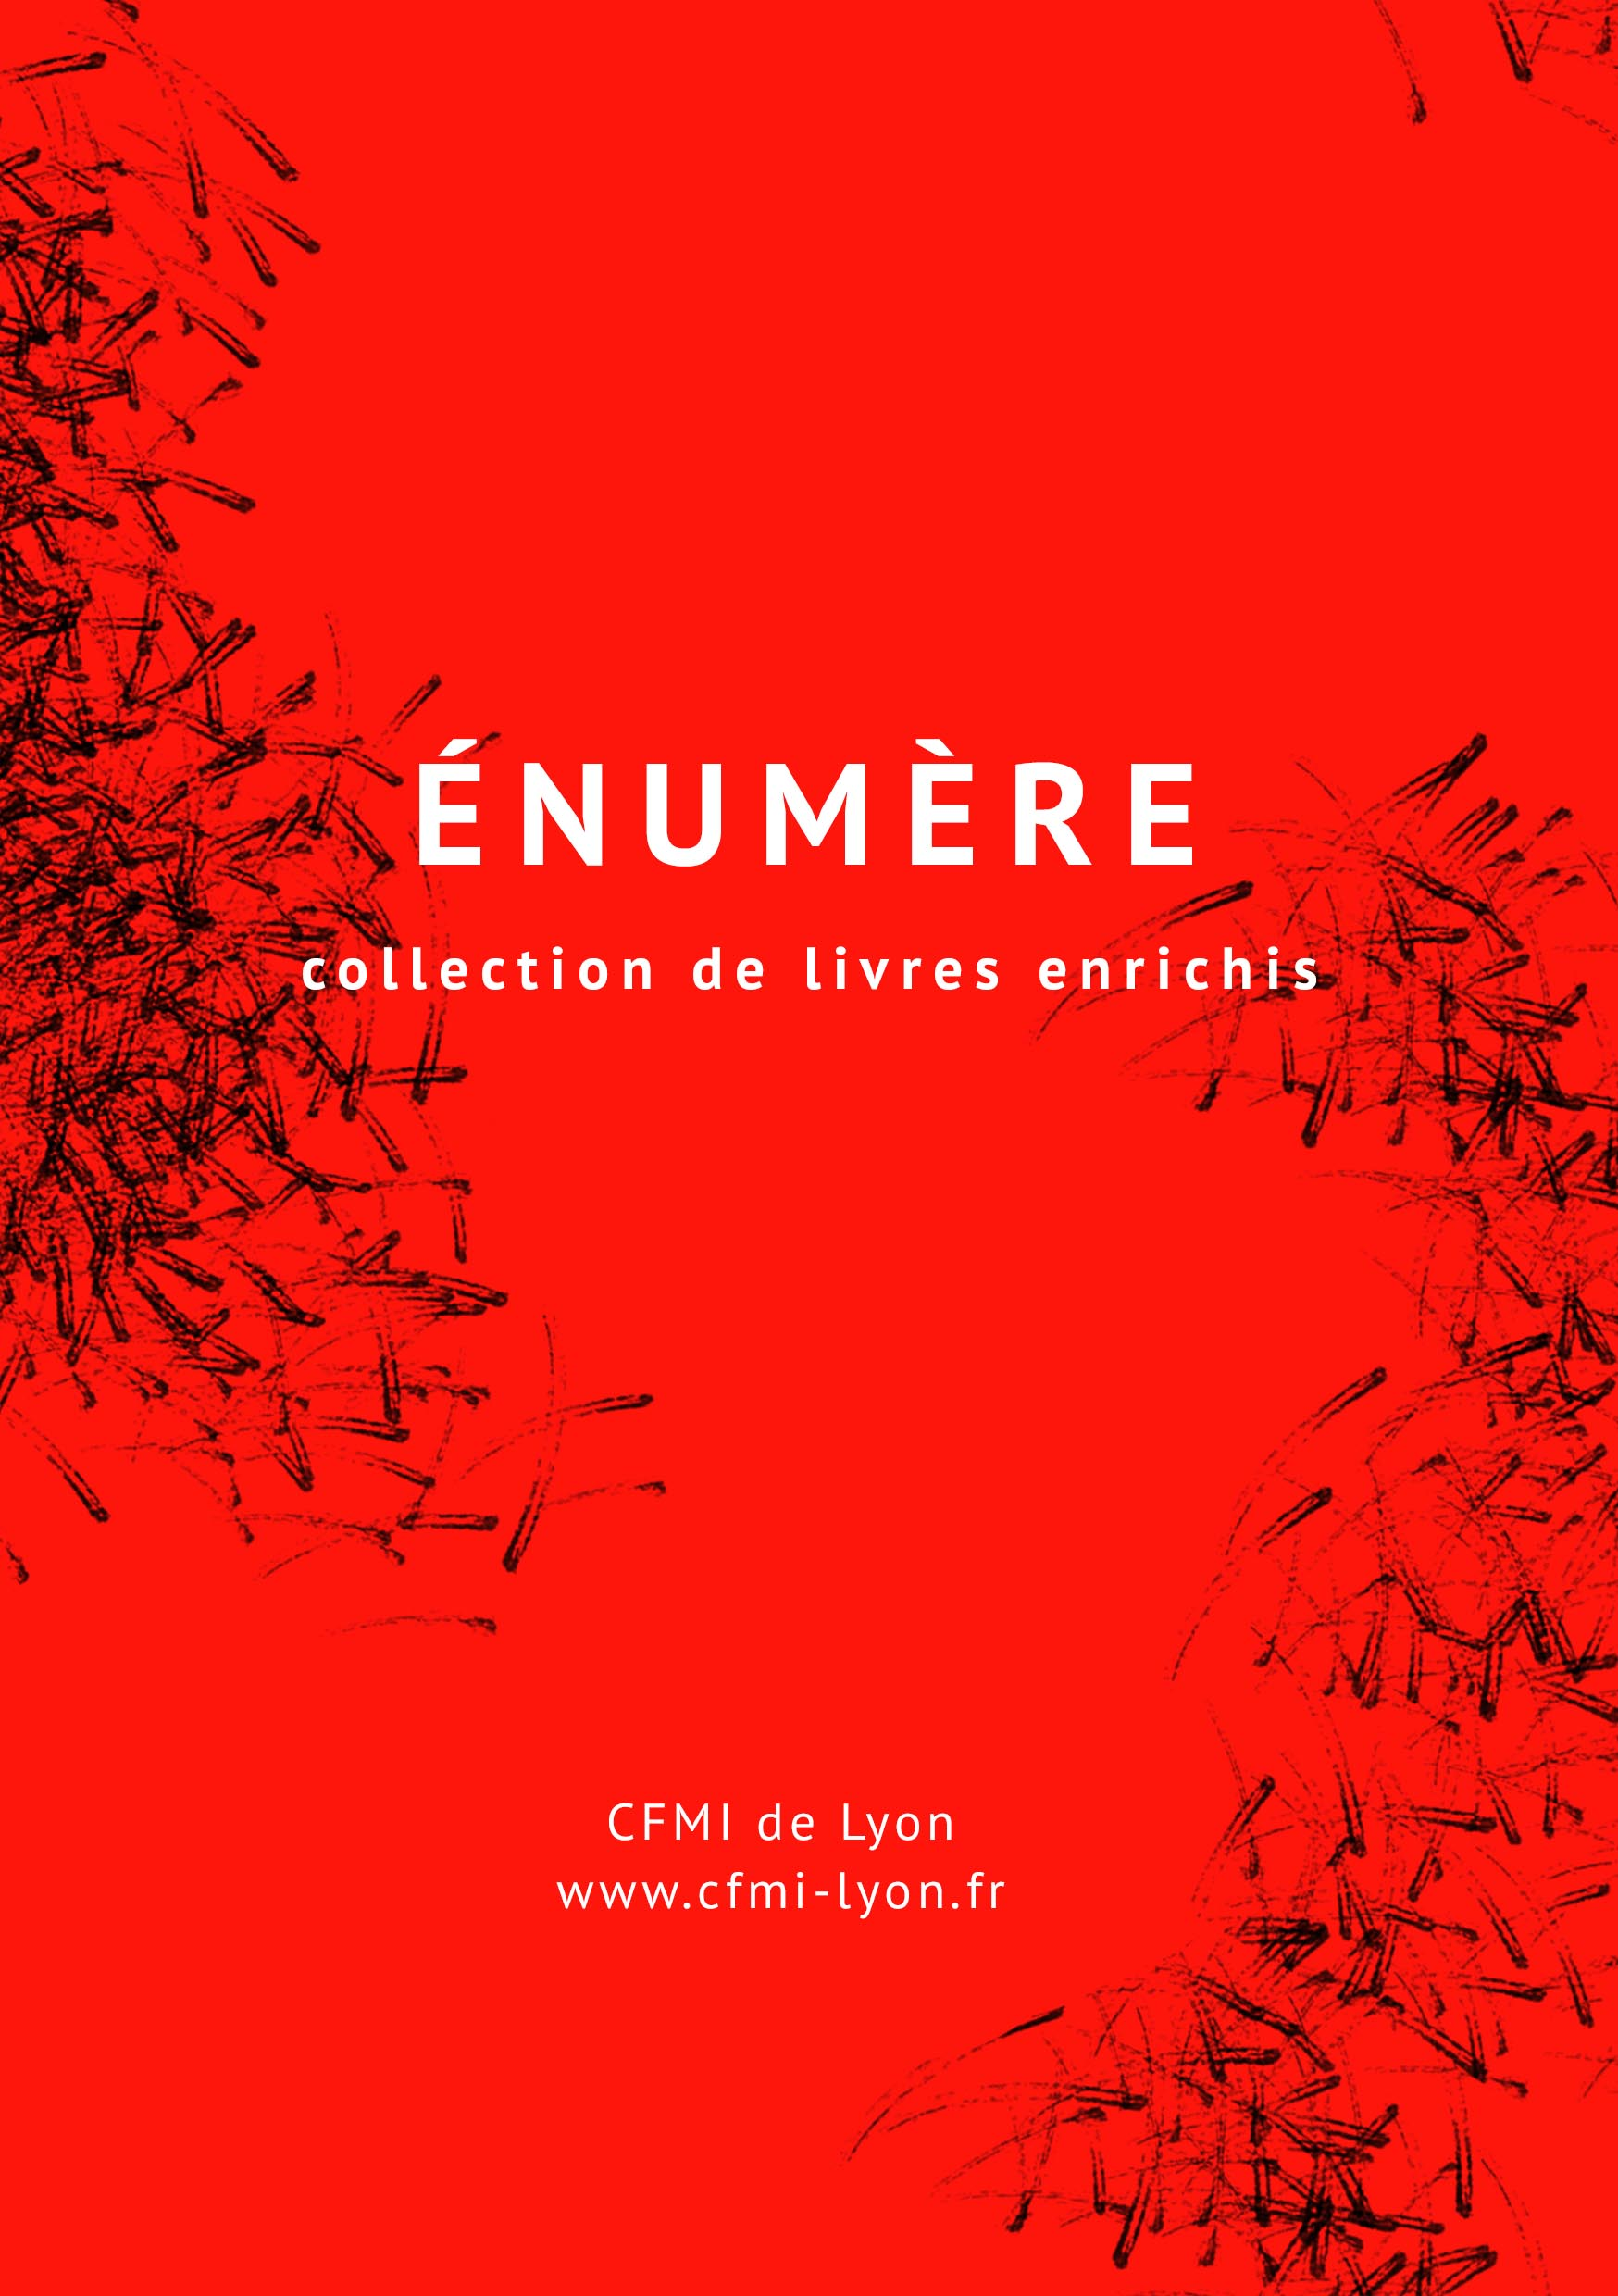 Flyer de la collection Énumère